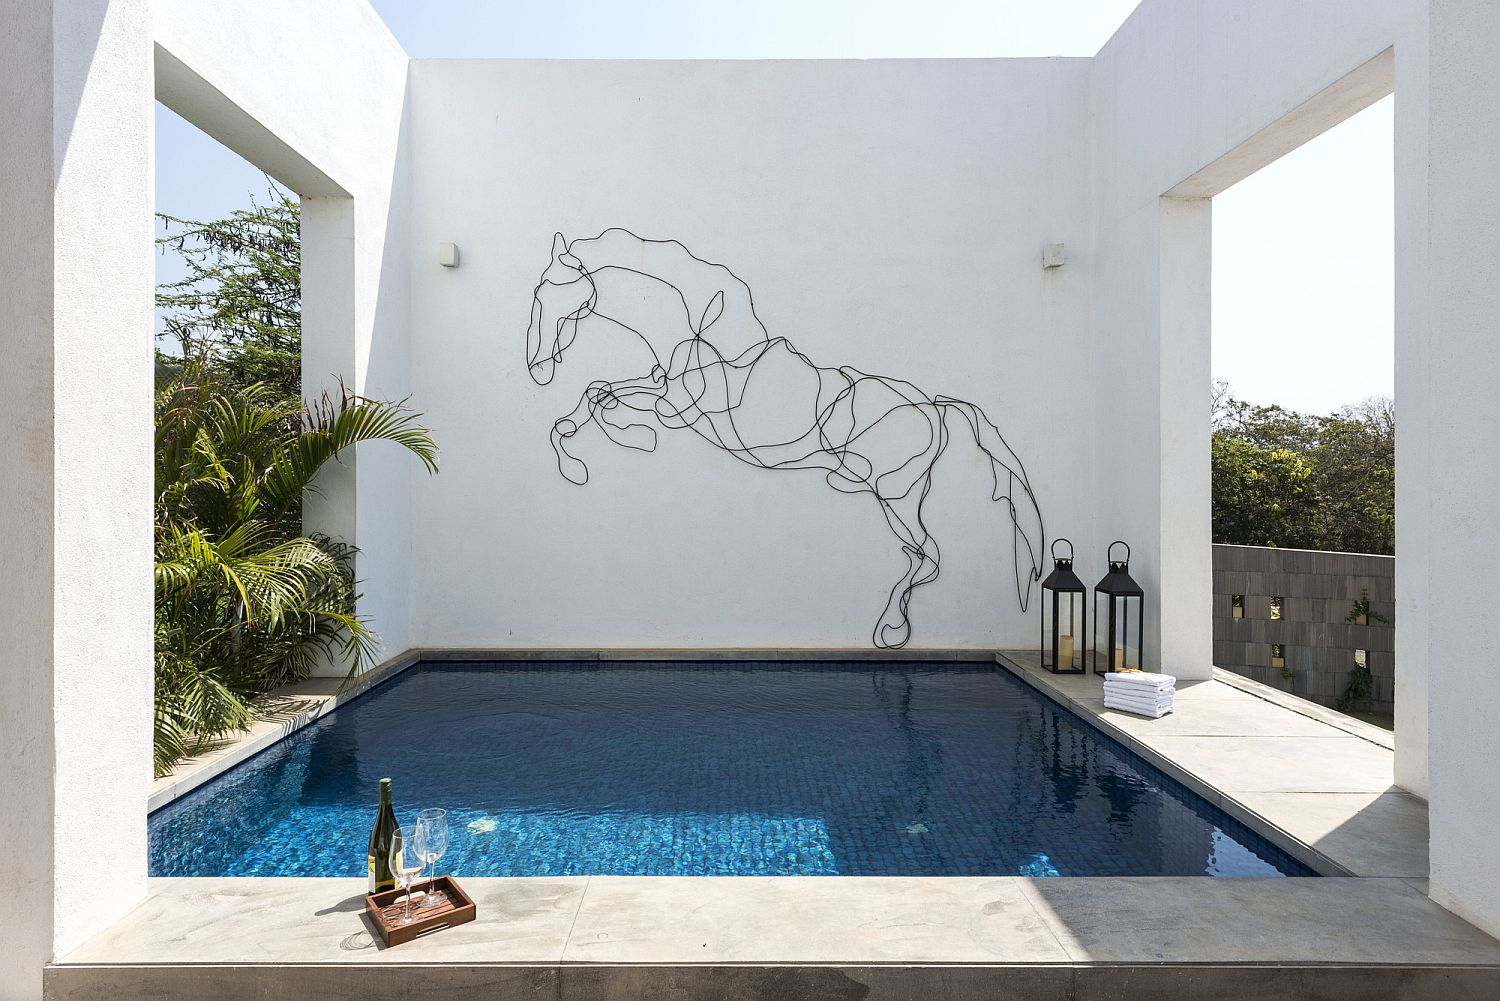 Sculptural figure of a horse on the wall next to the Jacuzzi